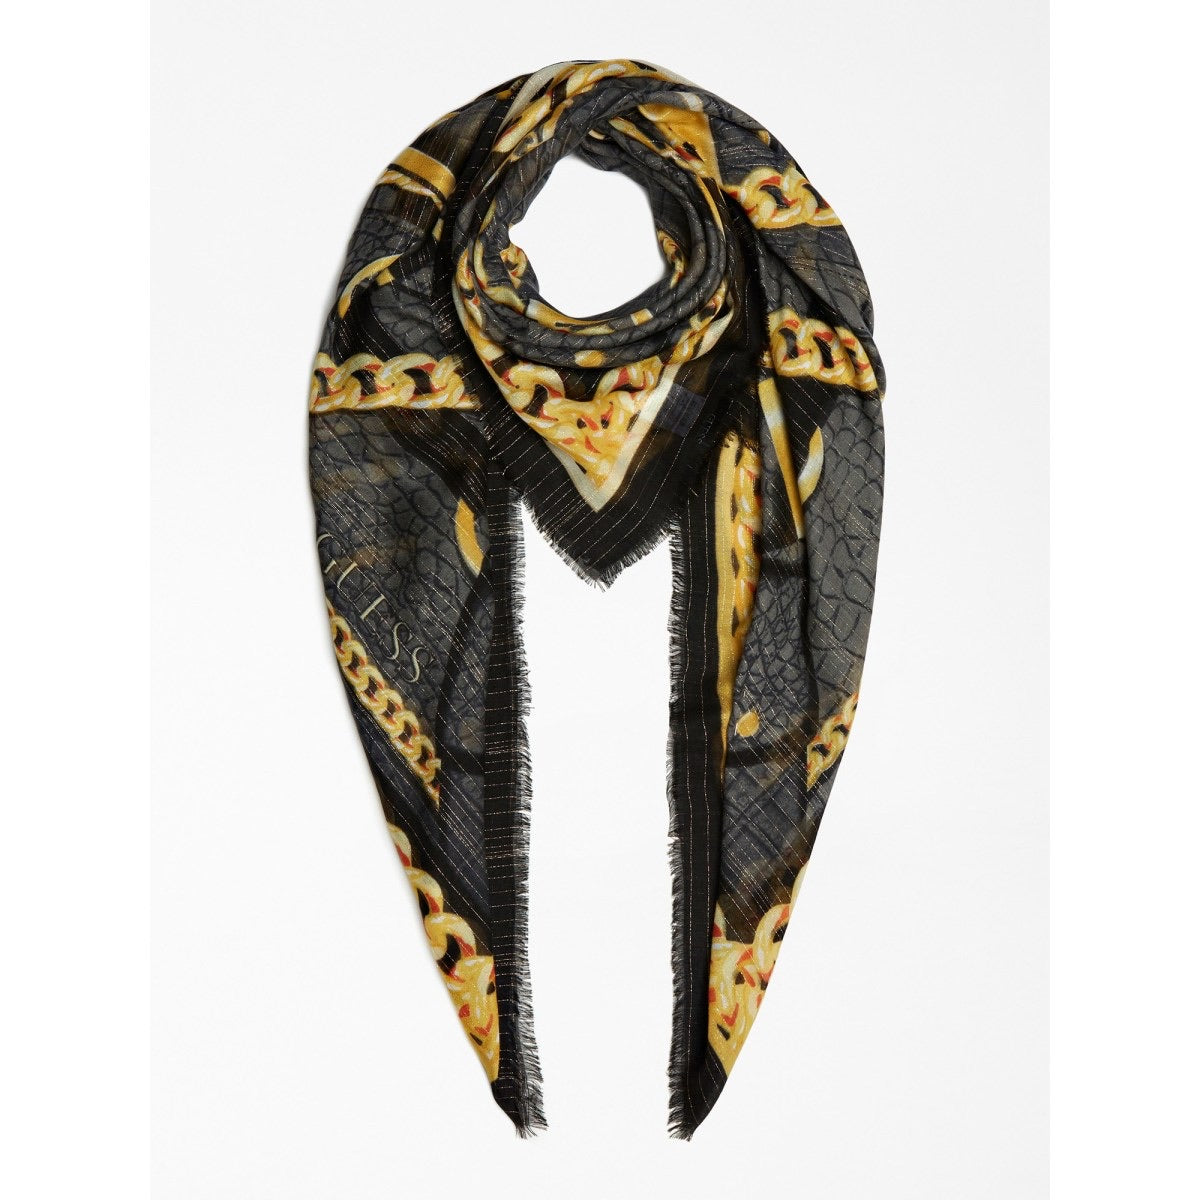 Foulard chaine et logo AW8346 By GUESS